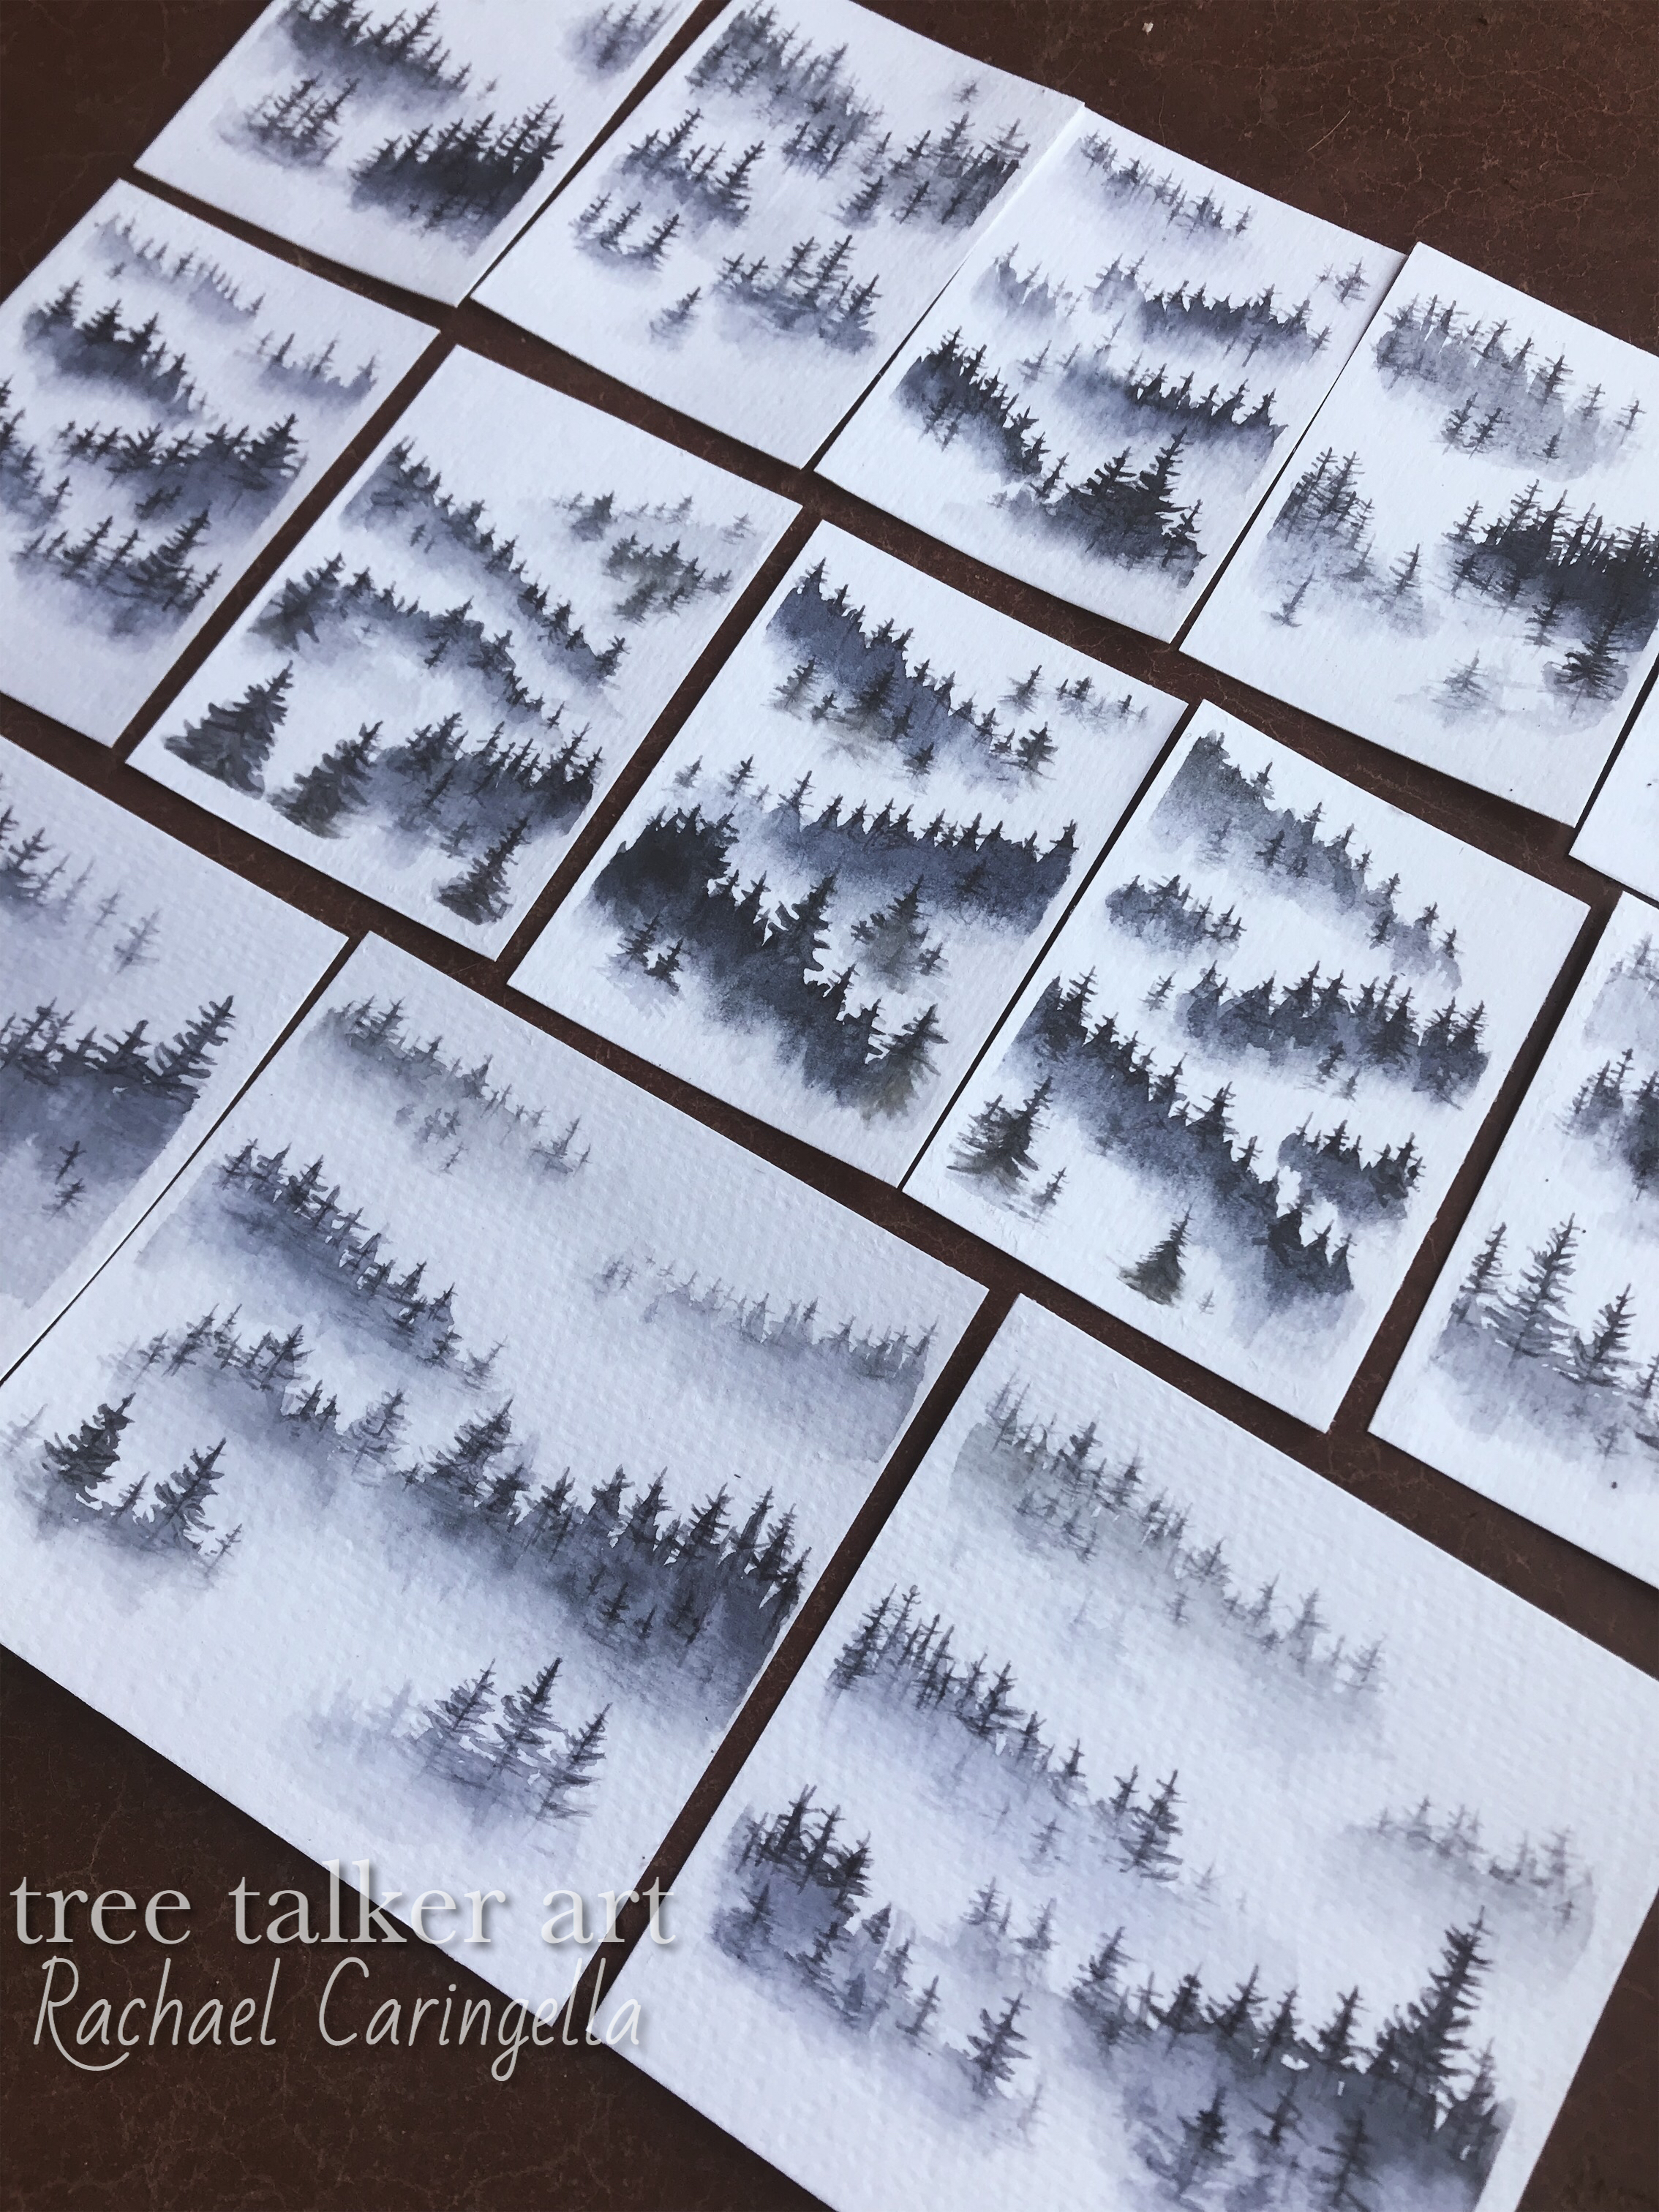 Misty Trees and forest scenes | Tree talker art